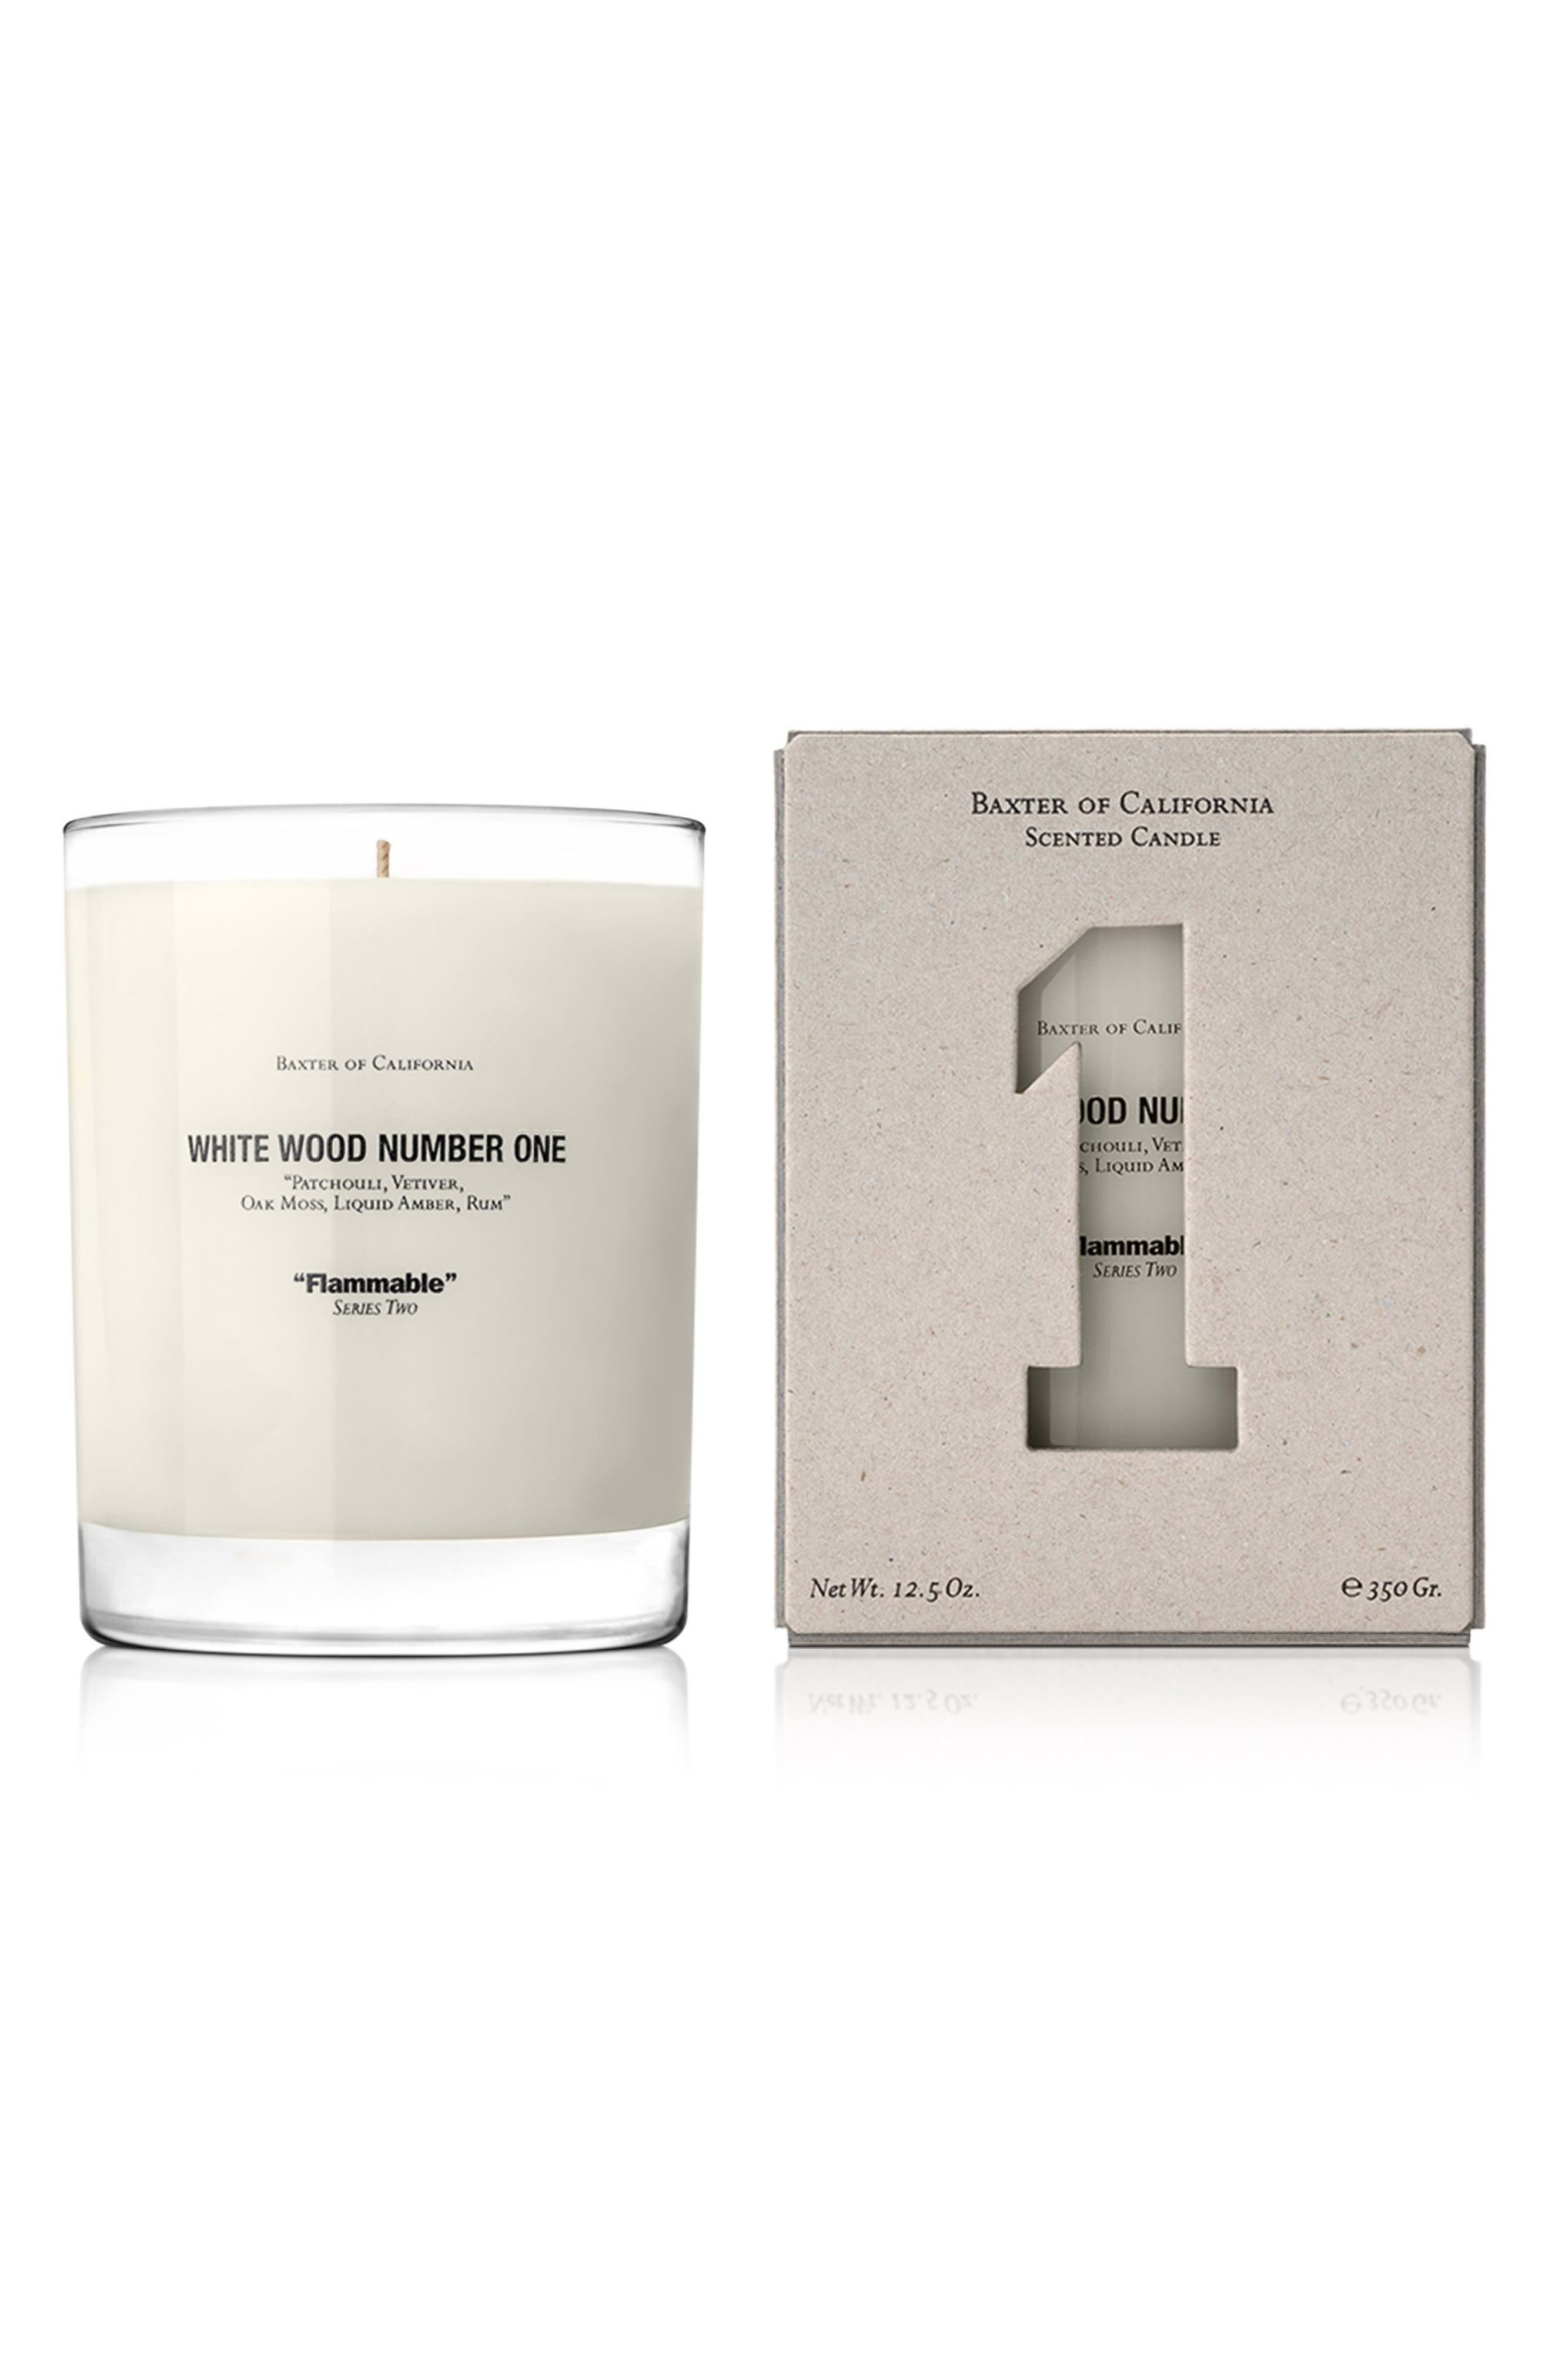 Main Image - Baxter of California White Wood Number One Flammable Scented Candle